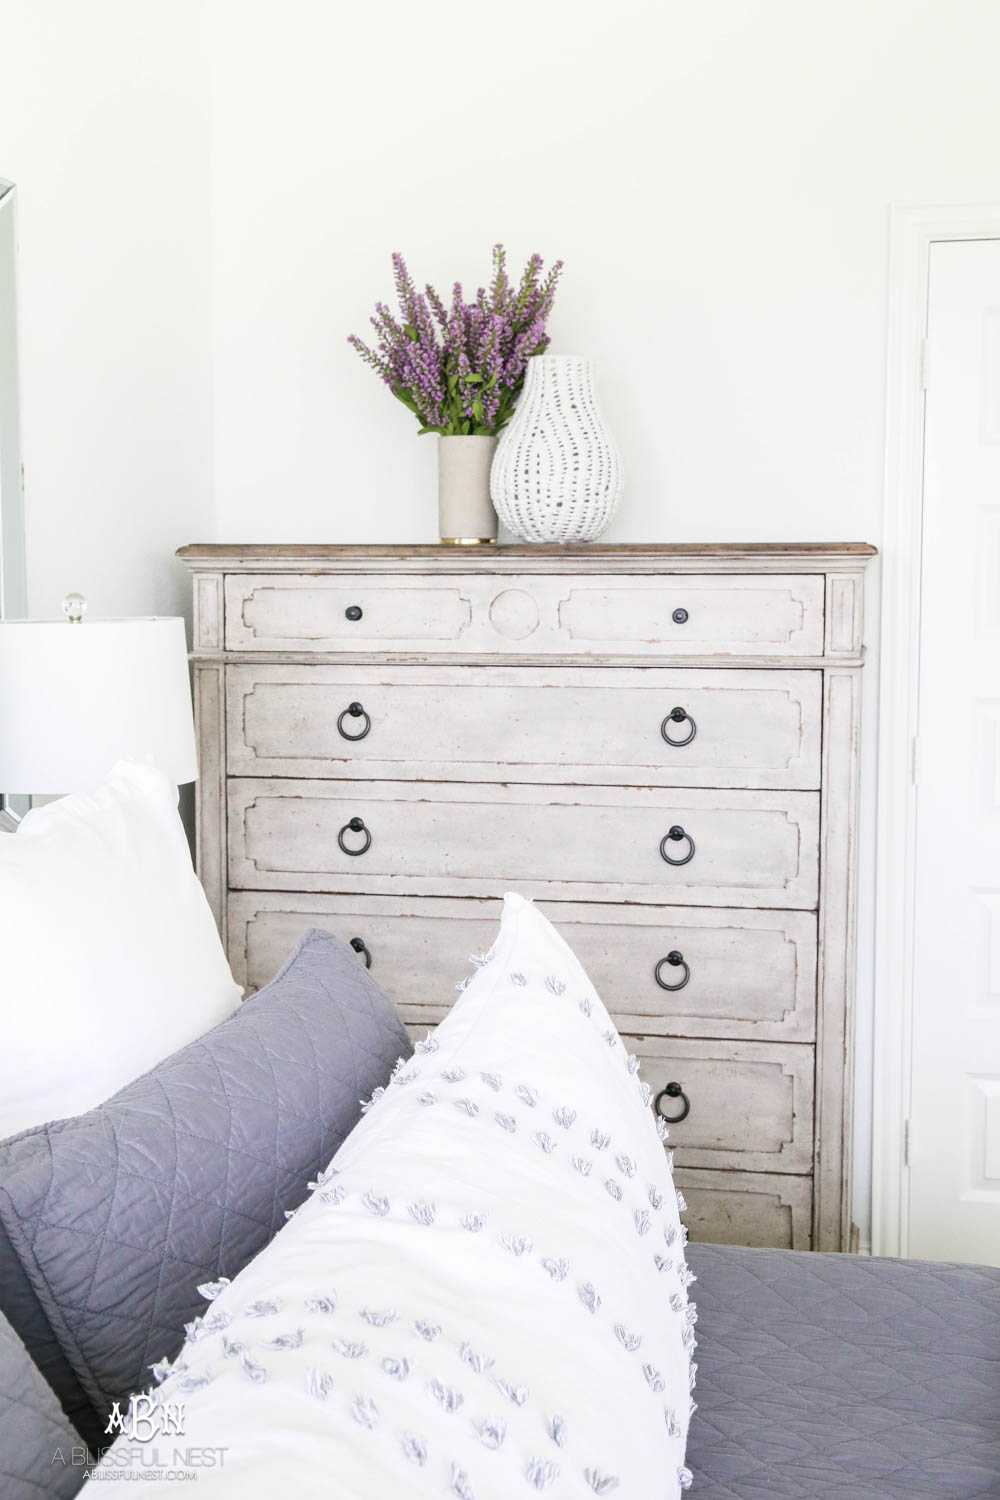 Sharing all the design plans for our home that are affordable updates and will transform these spaces. #ABlissfulNest #homedecorideas #homedecorideasonabudget